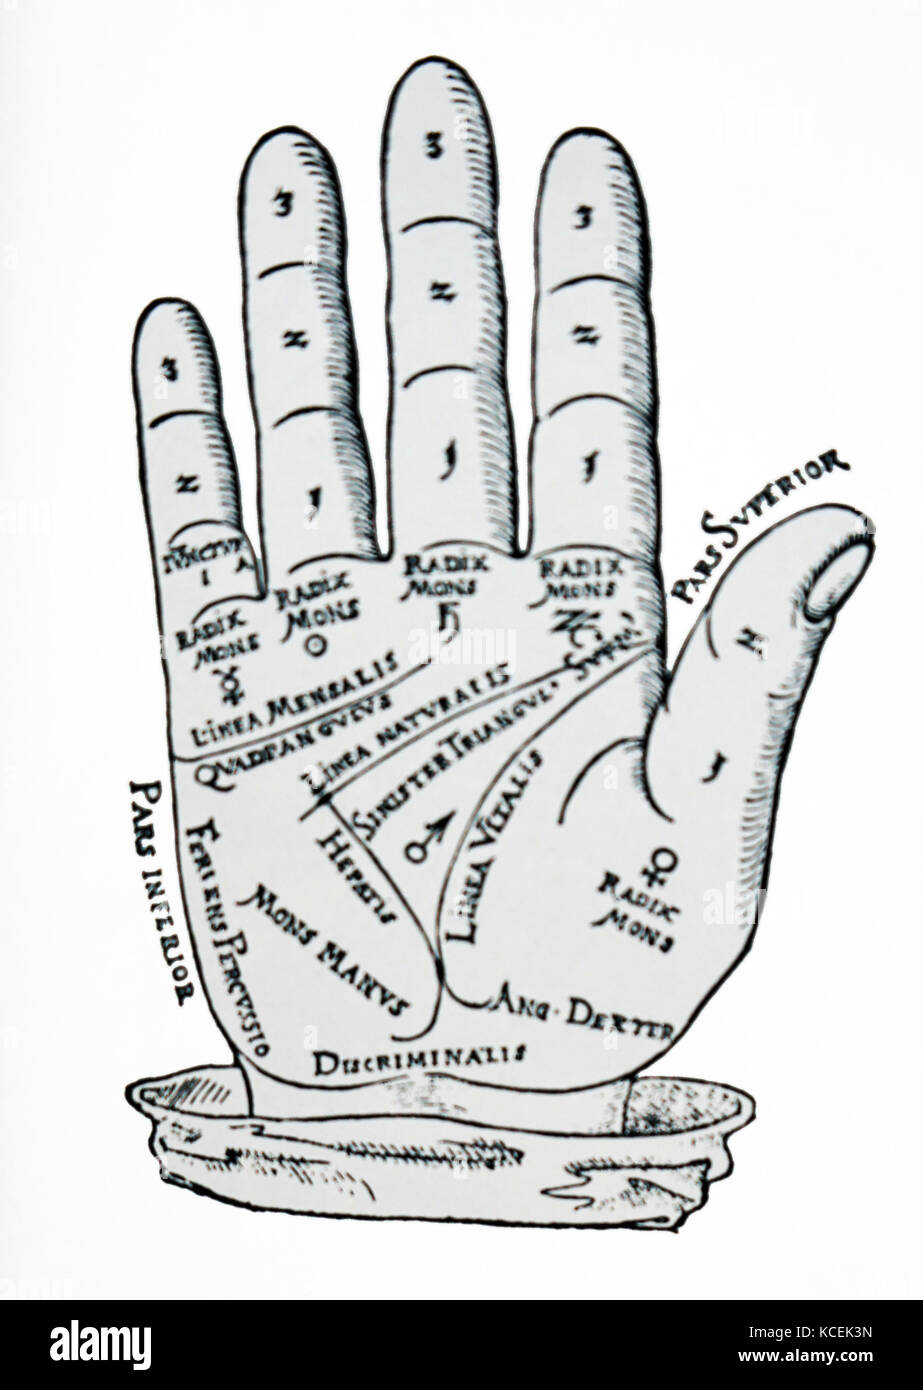 hight resolution of a palmistry chart used in the foretelling of the future through the study of the palm